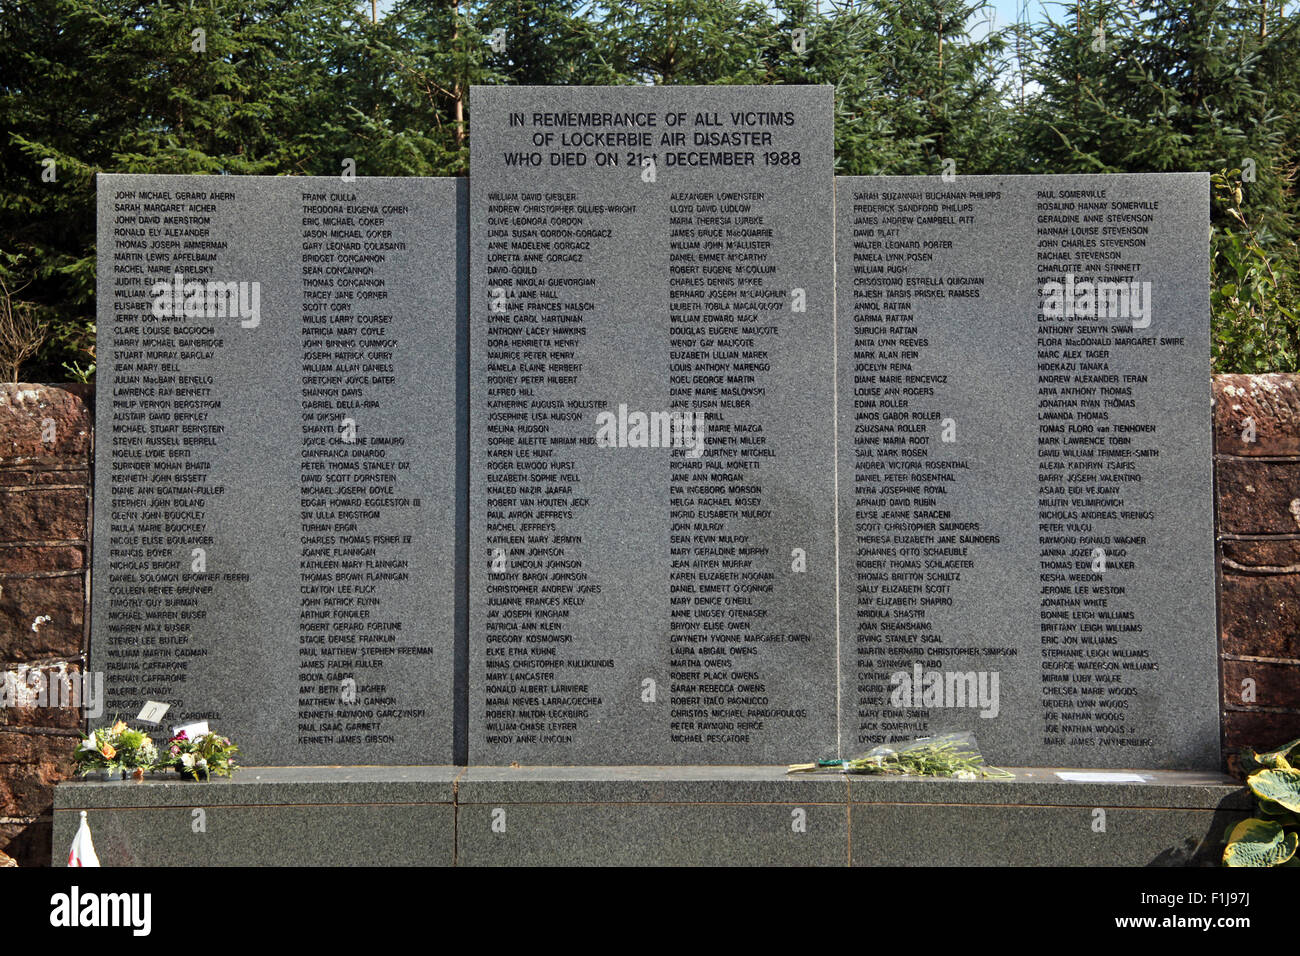 Lockerbie PanAm103 Victims Memorial,Scotland - Stock Image